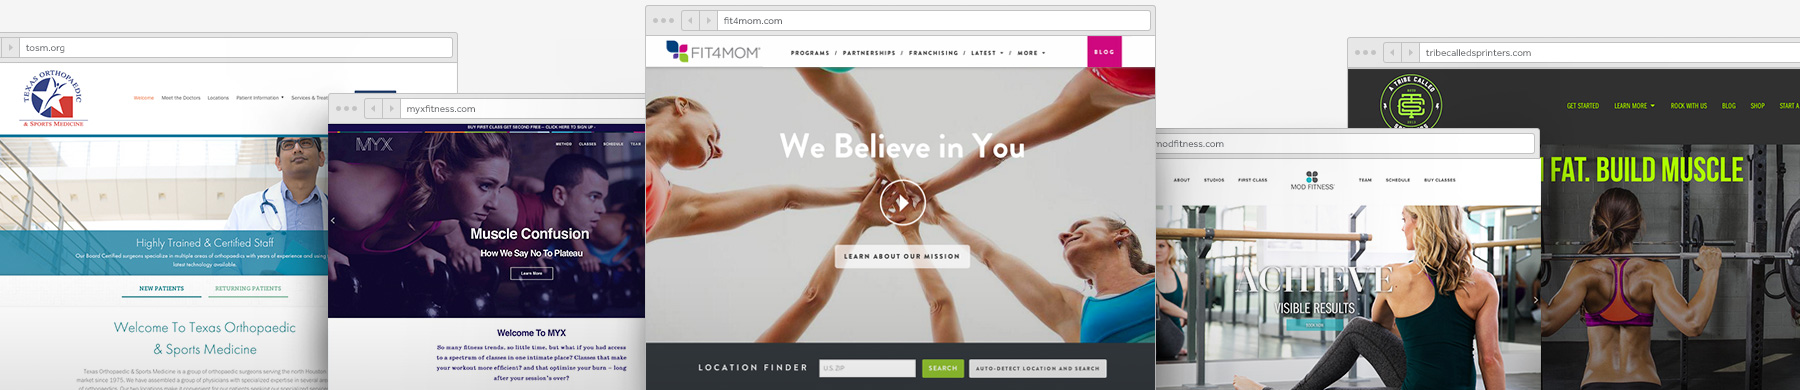 Health and Fitness Website Customer Examples